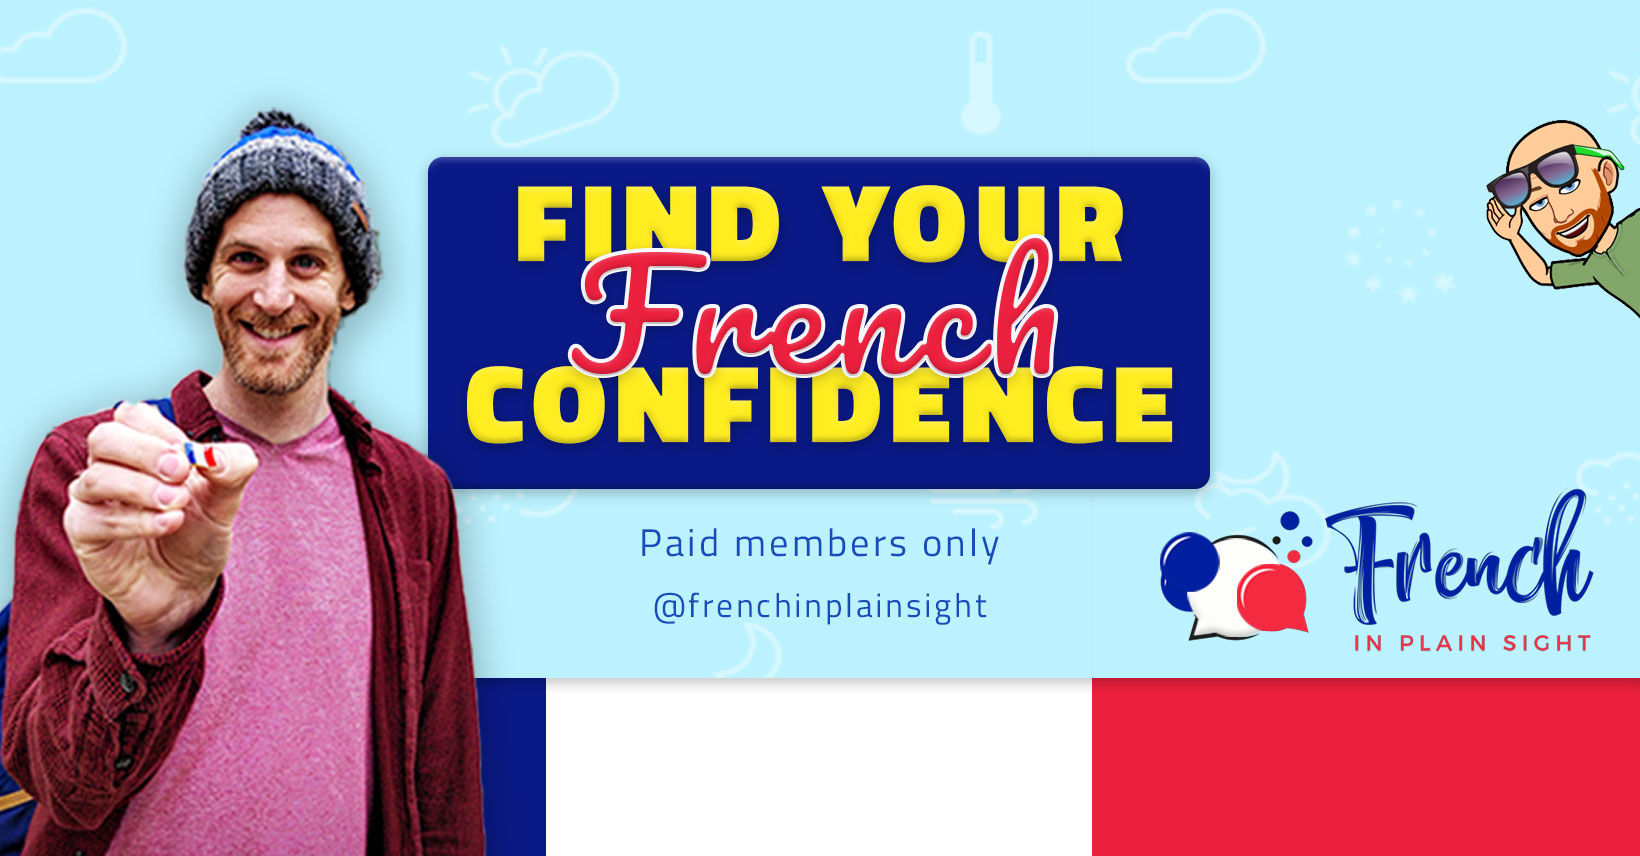 Find Your French Confidence course image